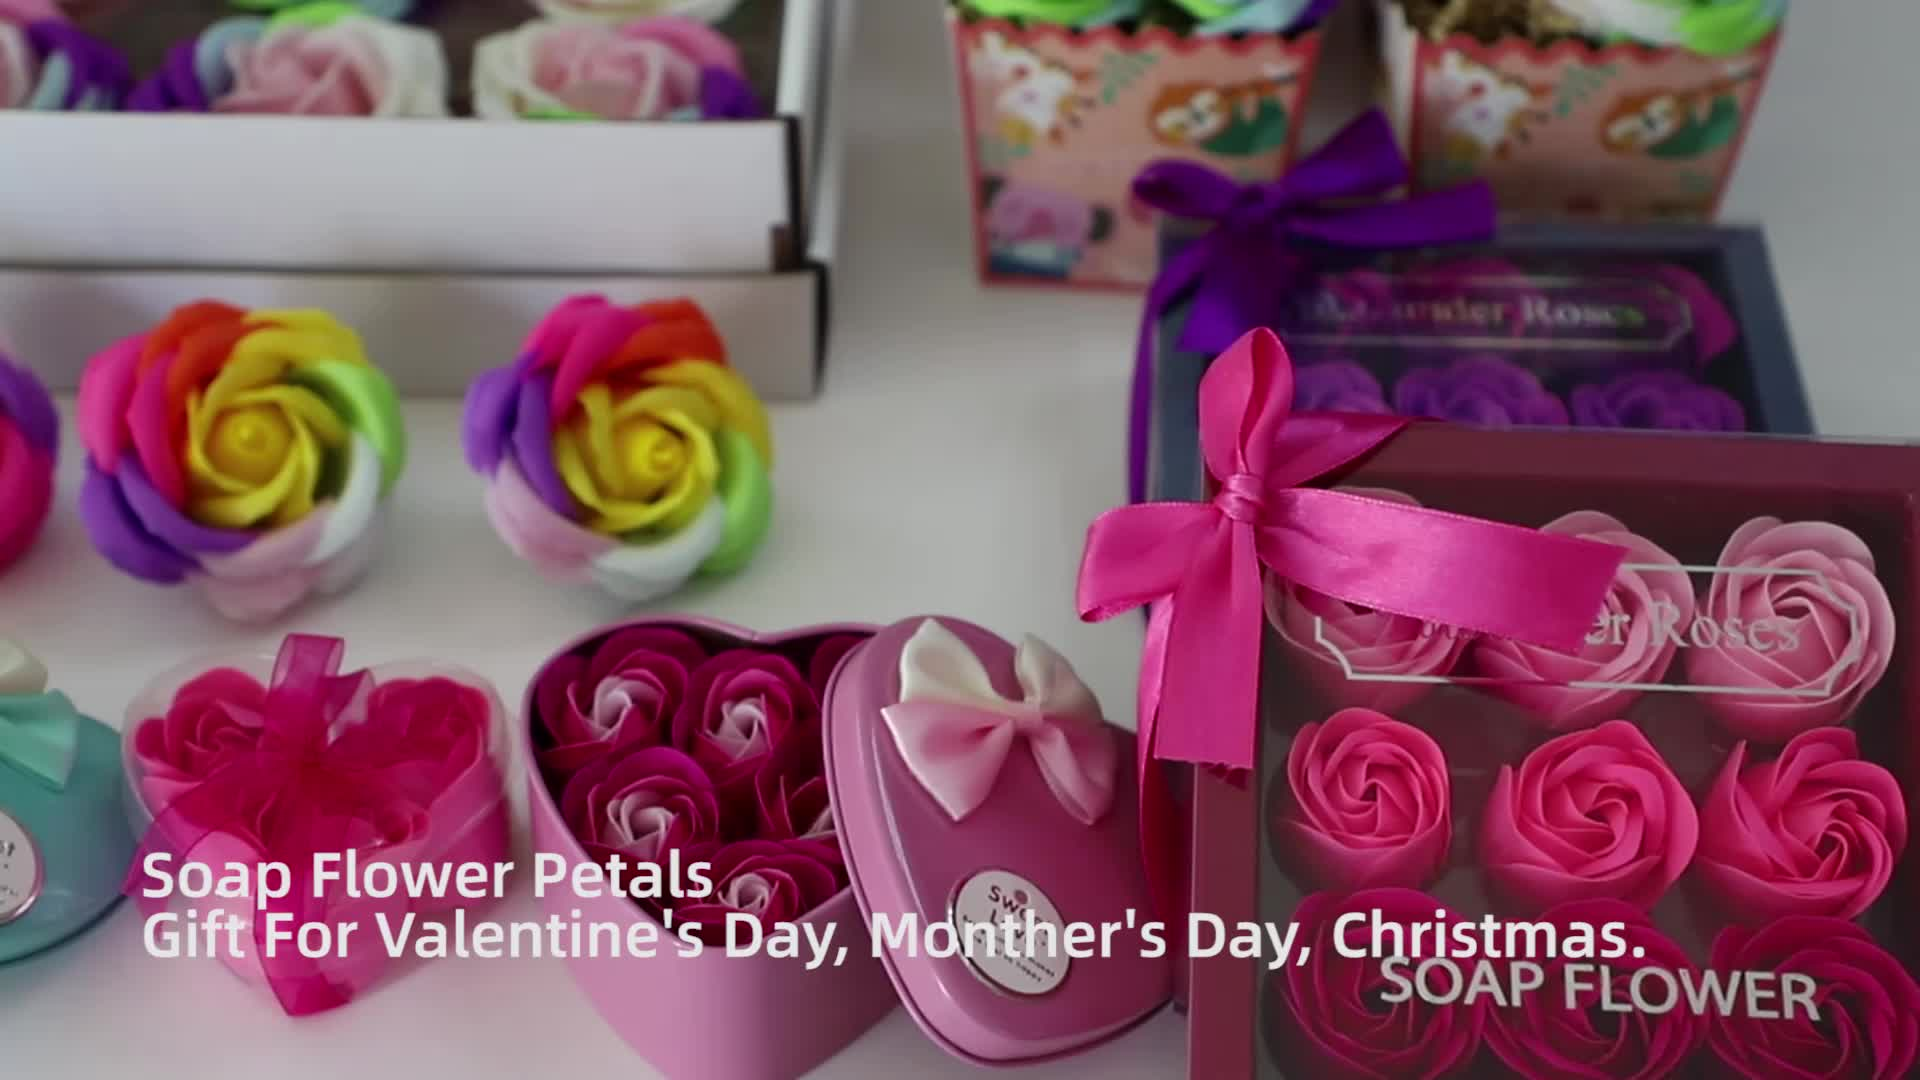 Hot sale roses artificial bouquet gift box cleaning whitening bath  manufacture soap flower for skincare